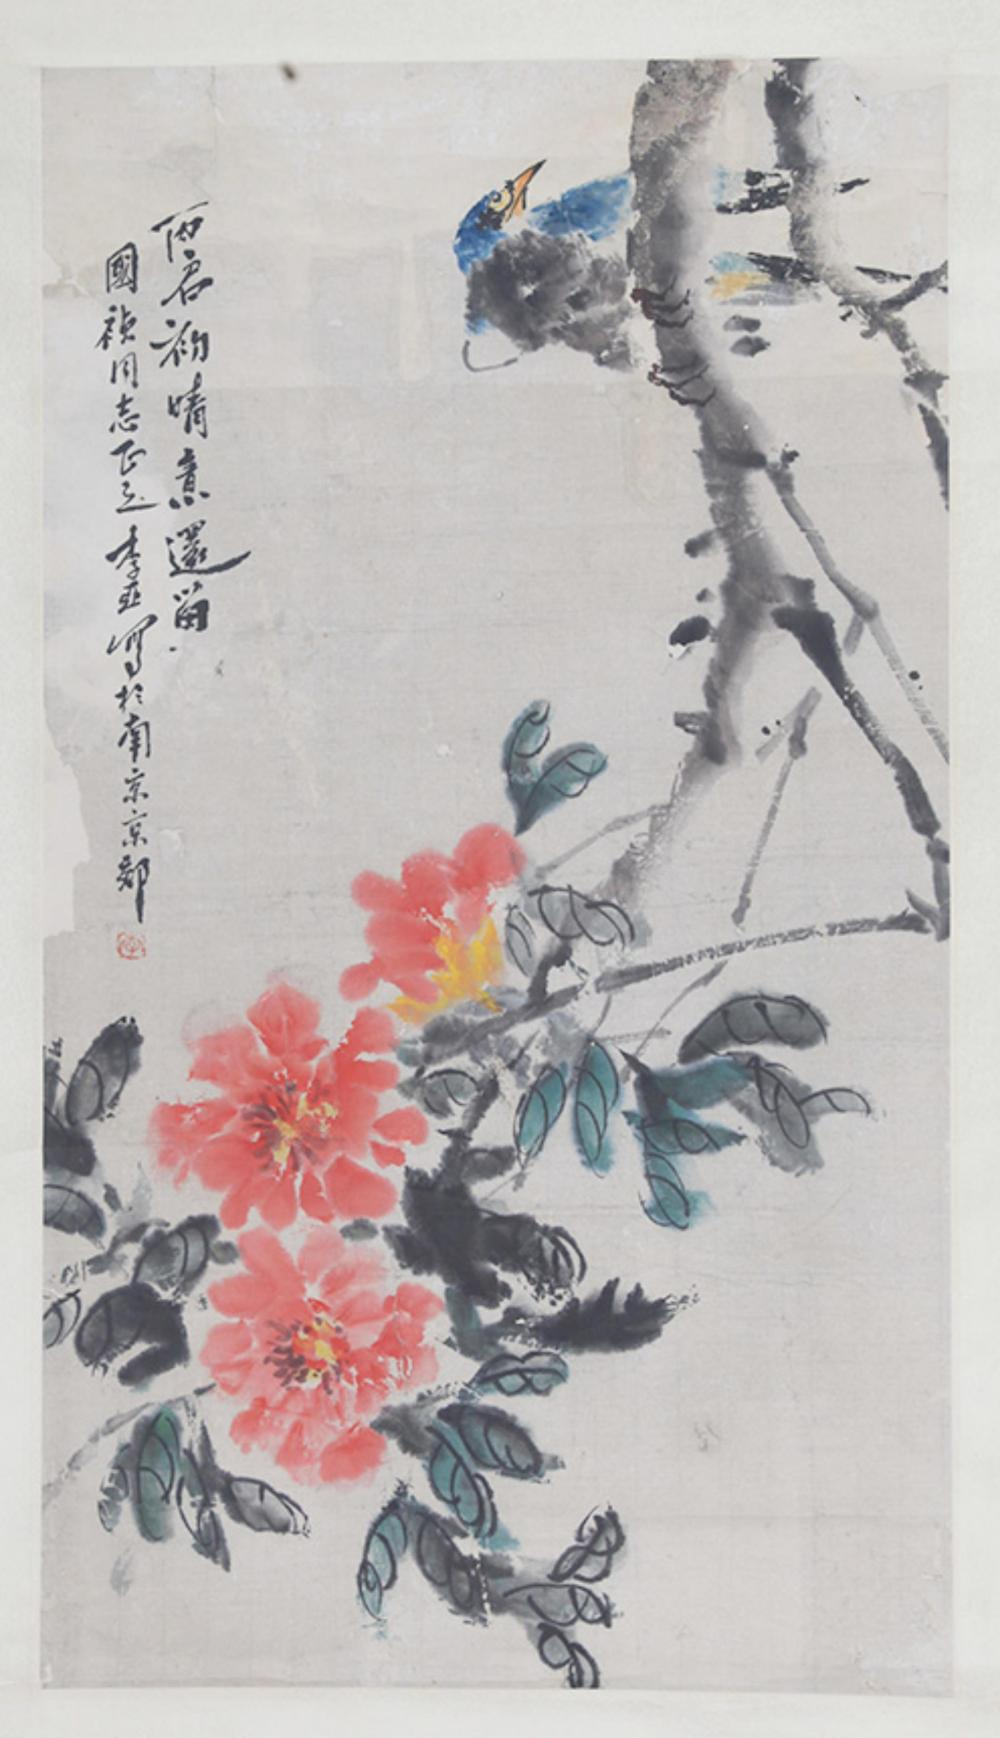 LI YA CHINESE PAINTING, ATTRIBUTED TO